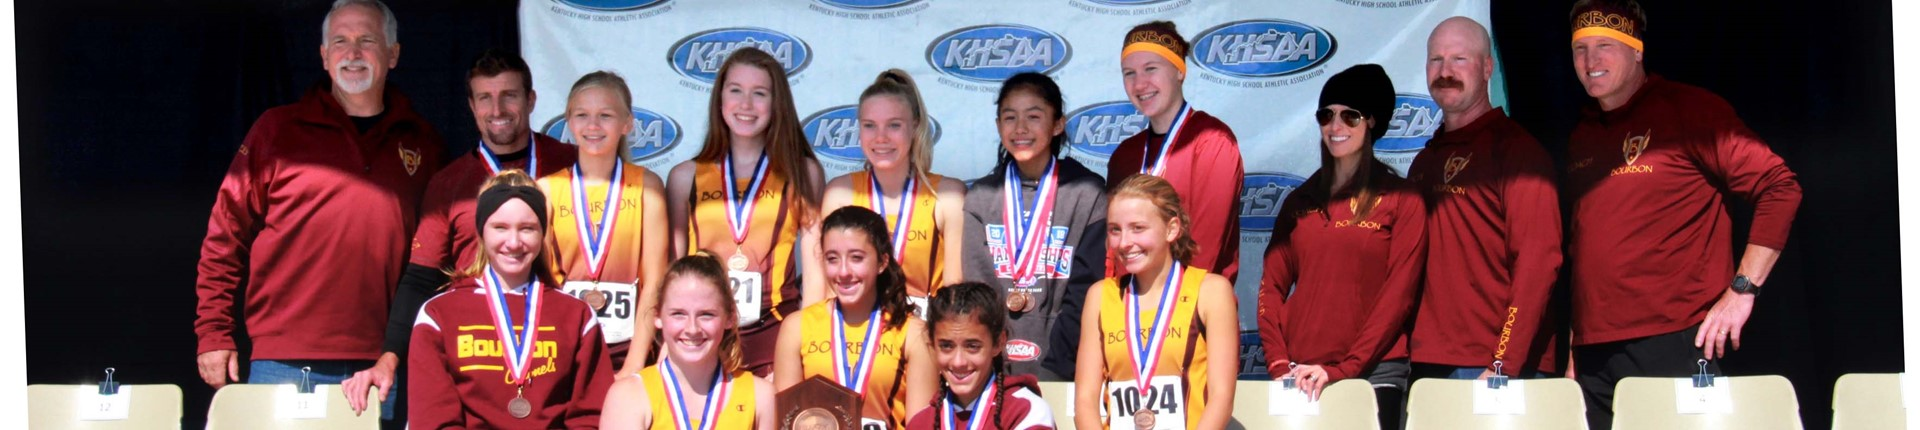 Cross Country Girls Team Are 4th in State Competition